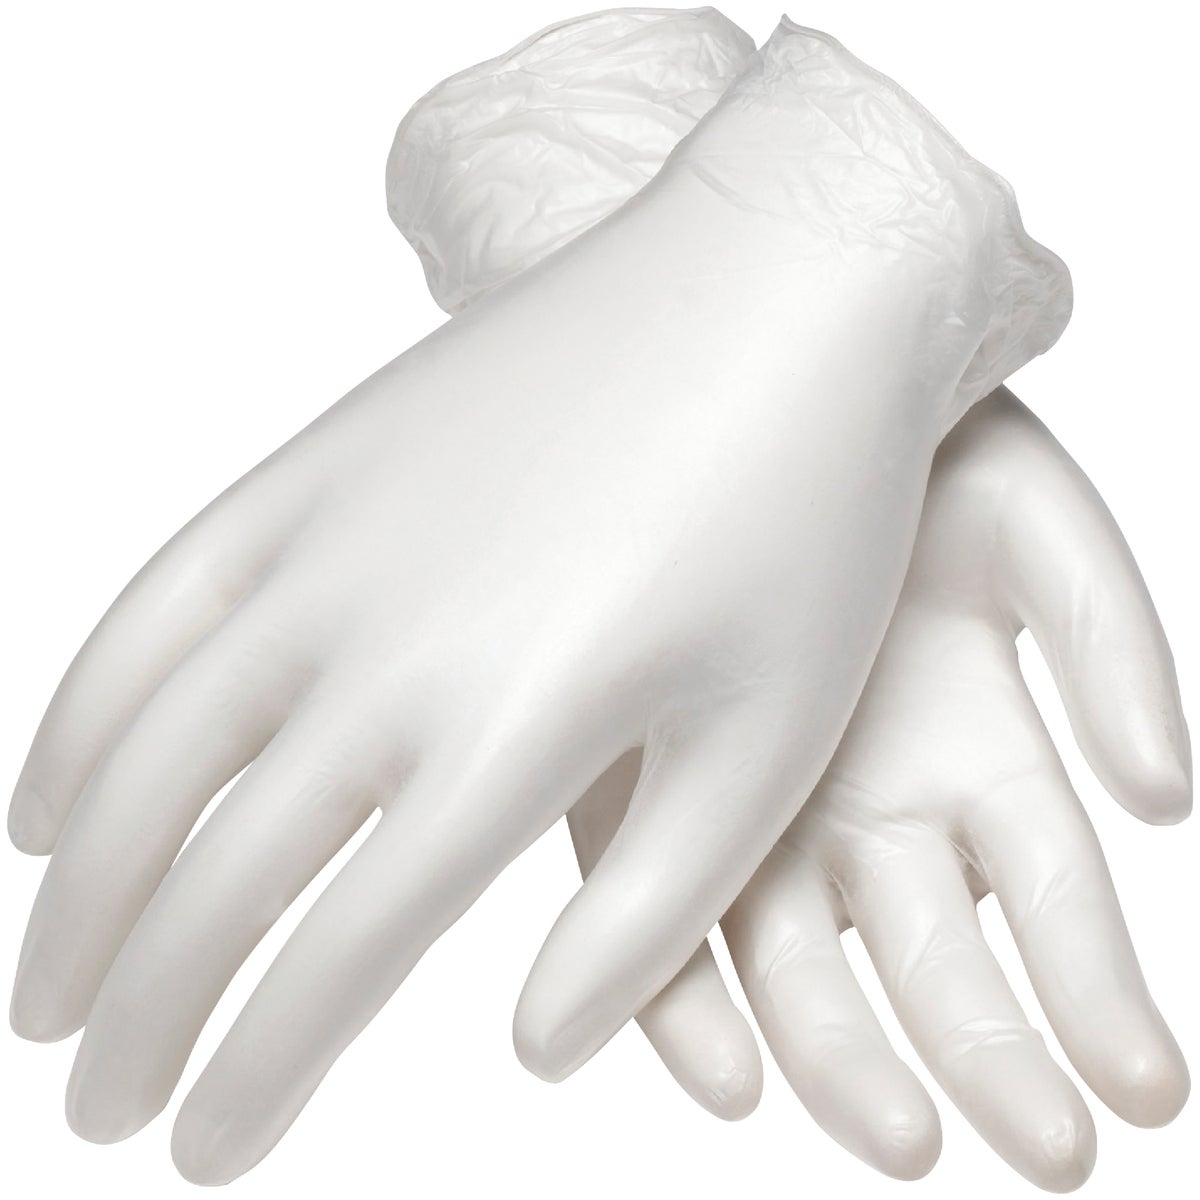 MEDIUM PF VINYL GLOVES